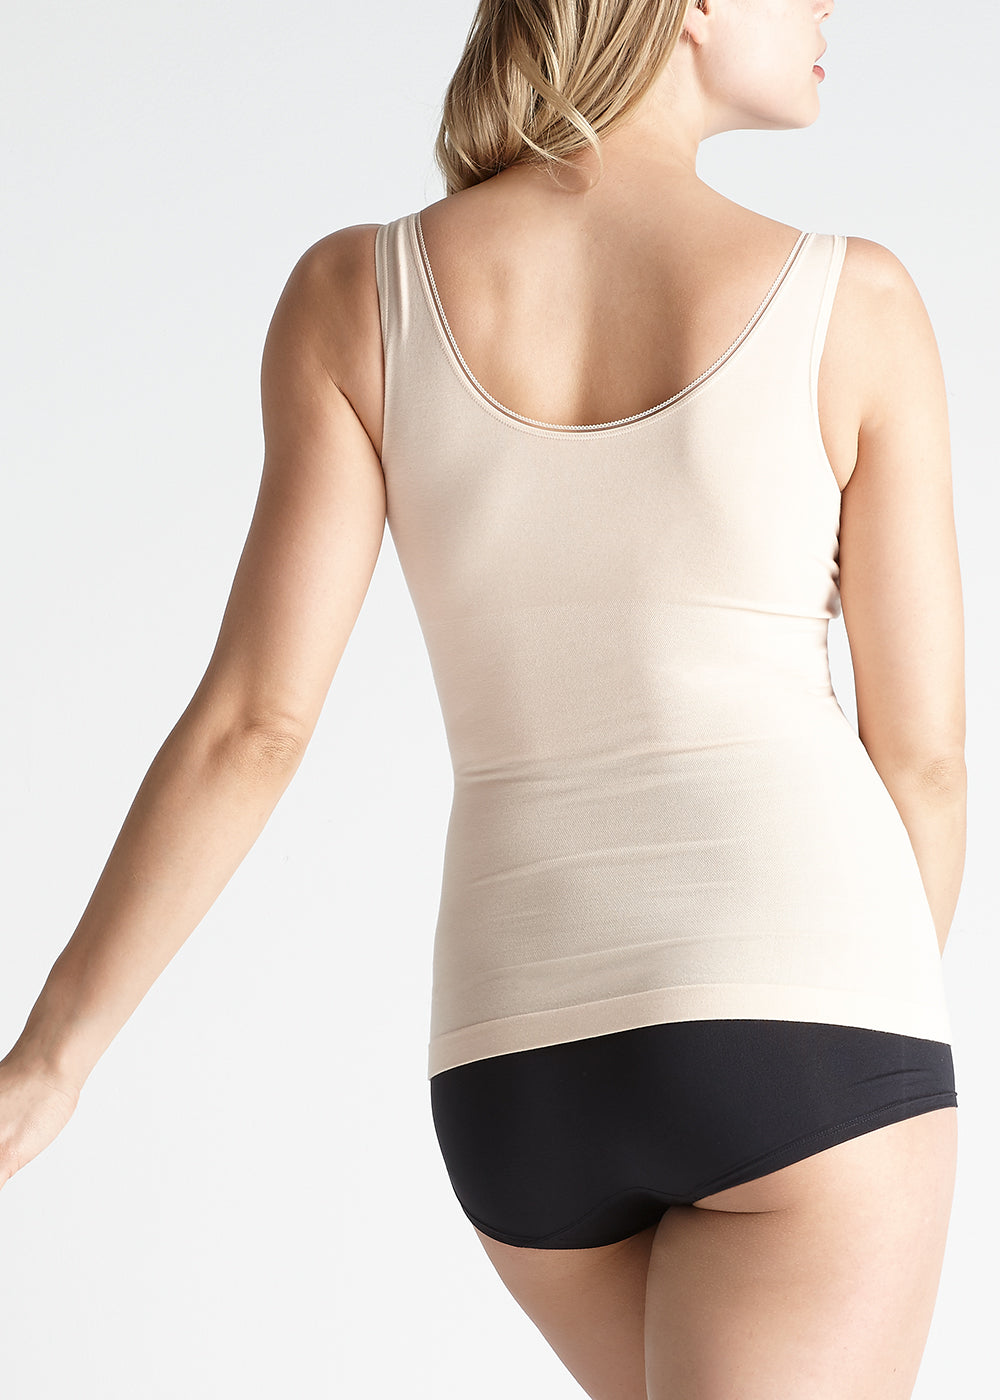 """298e069aa1 Model is 5  10"""" and wearing a size M L."""